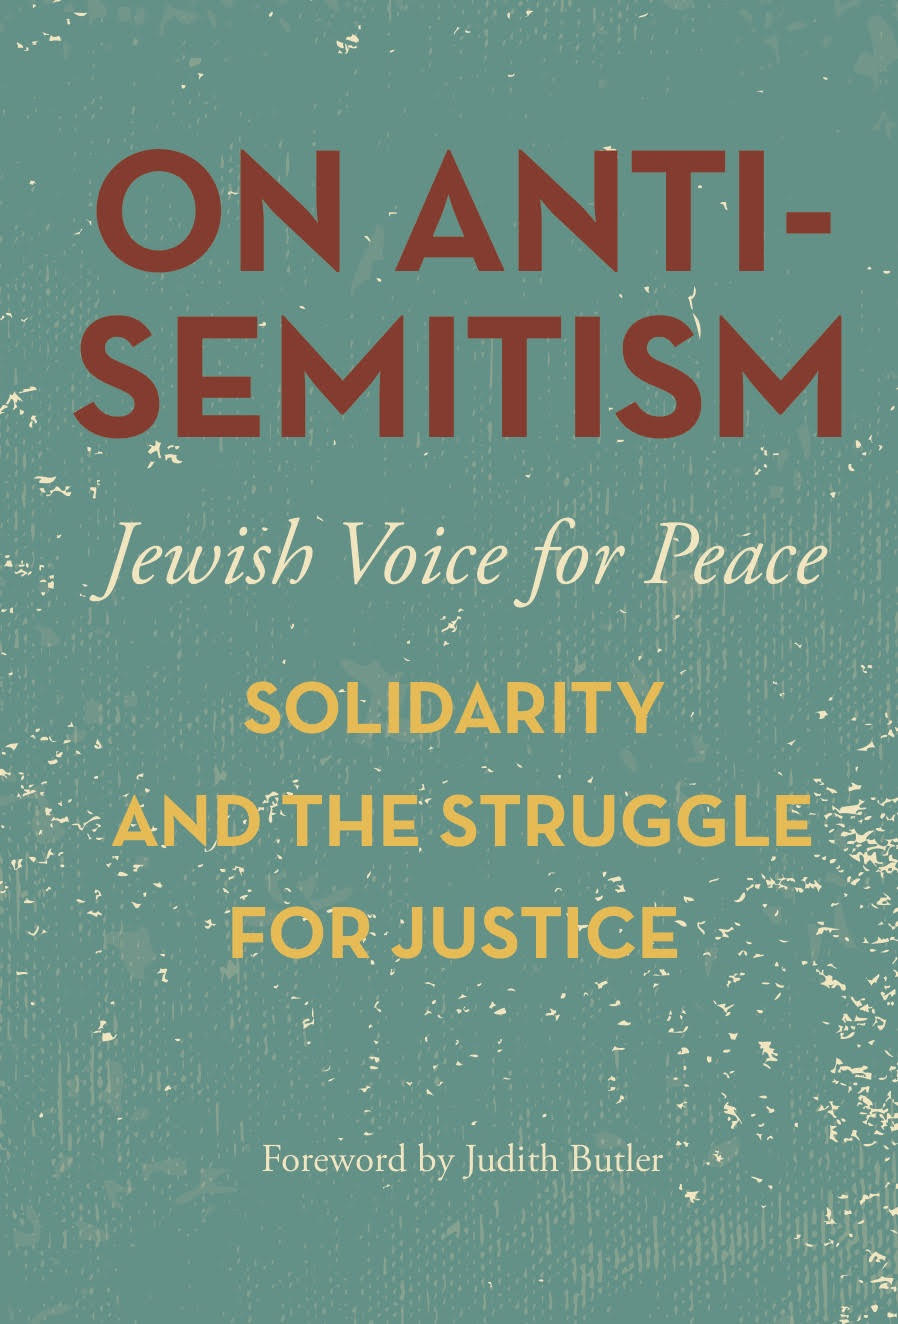 On Antisemitism: Solidarity and the Struggle for Justice